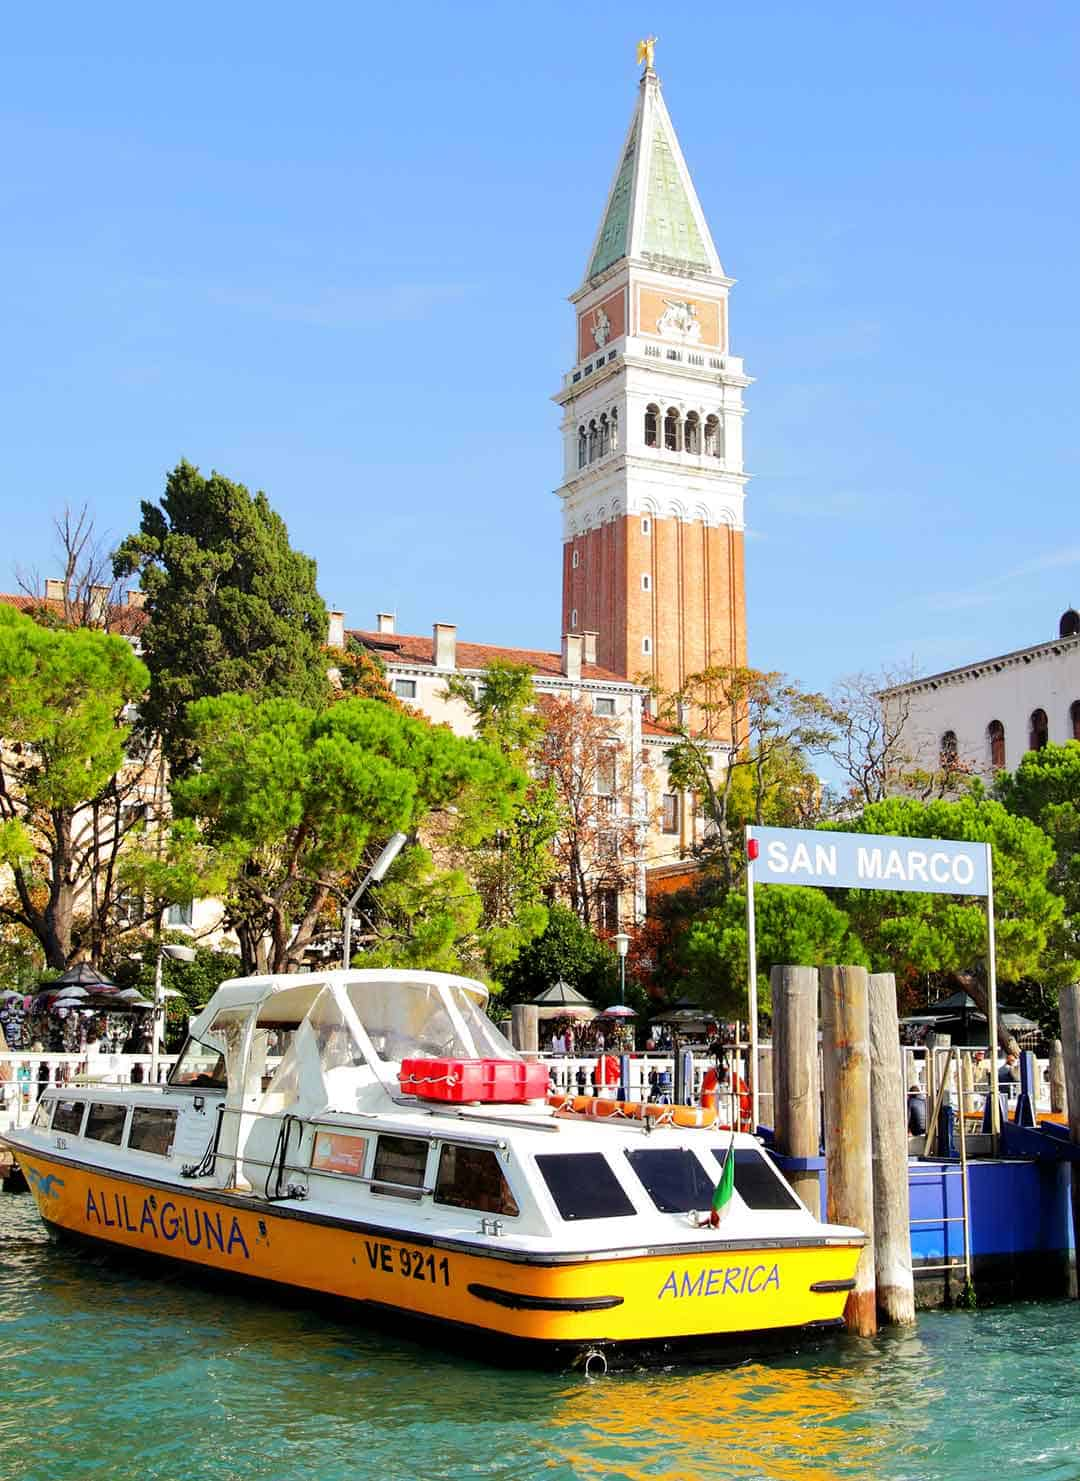 Image of Alilaguna water shuttle in Venice